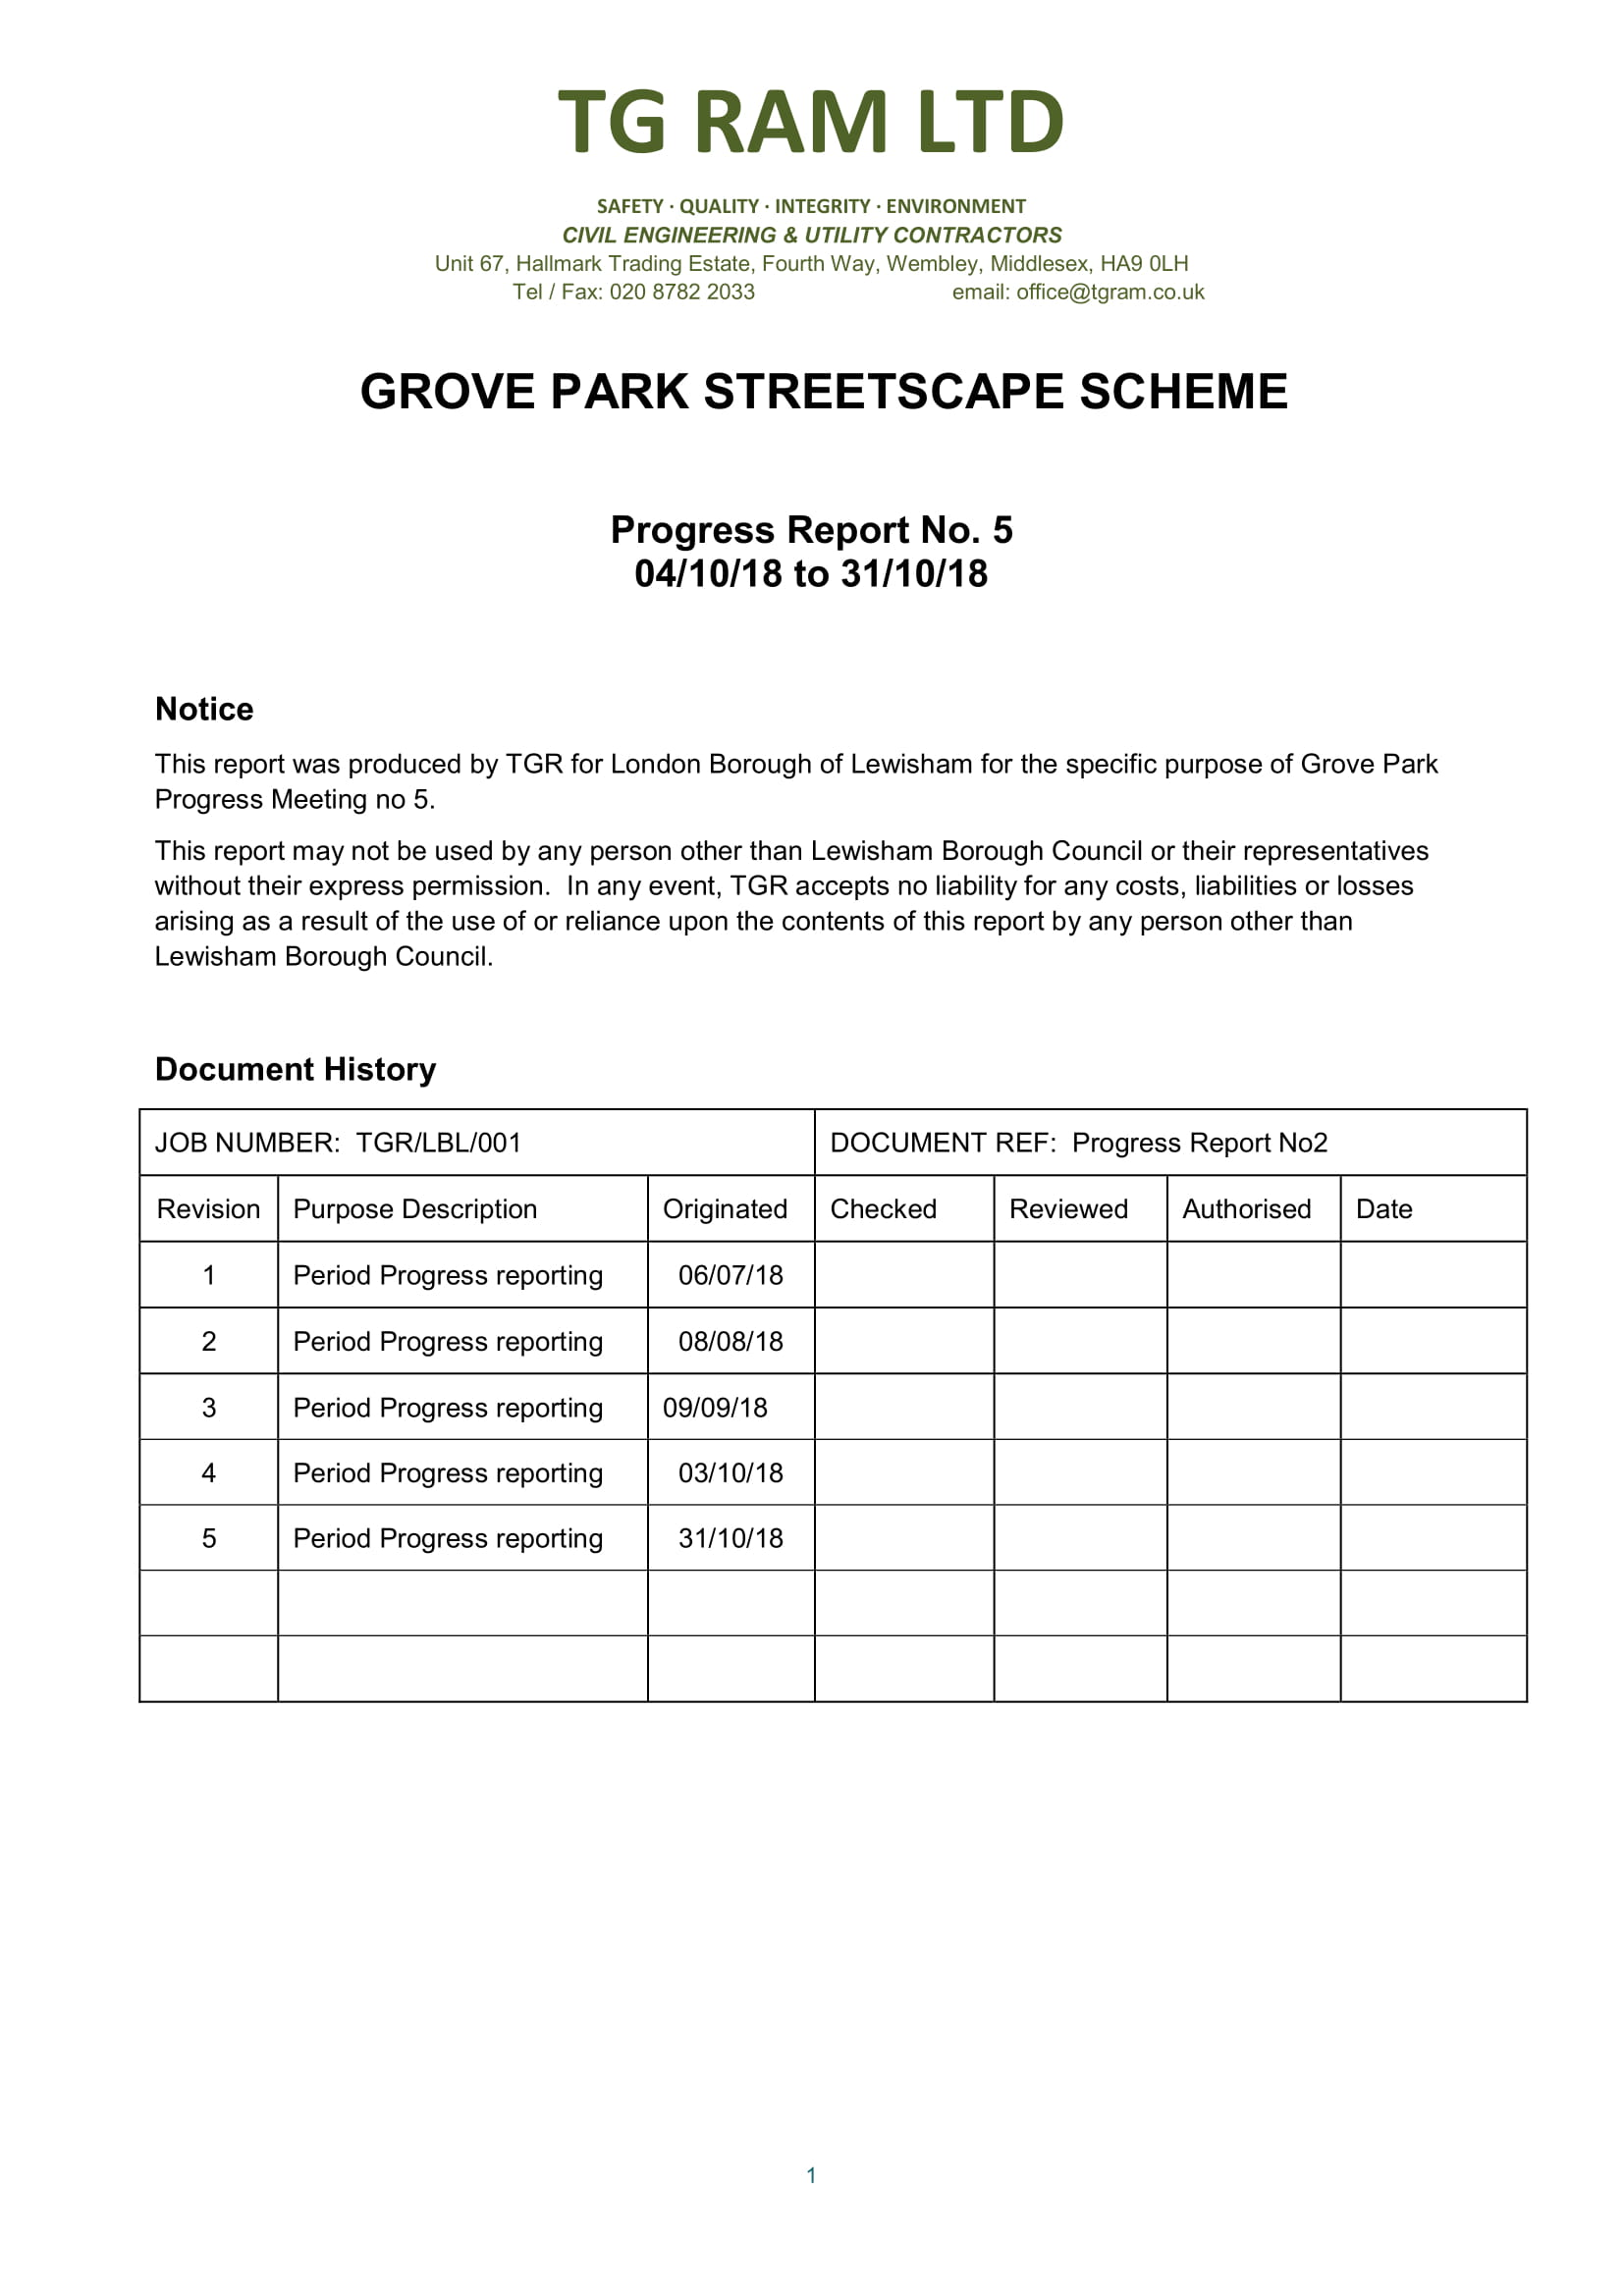 grove-park-short-progress-report-5-1